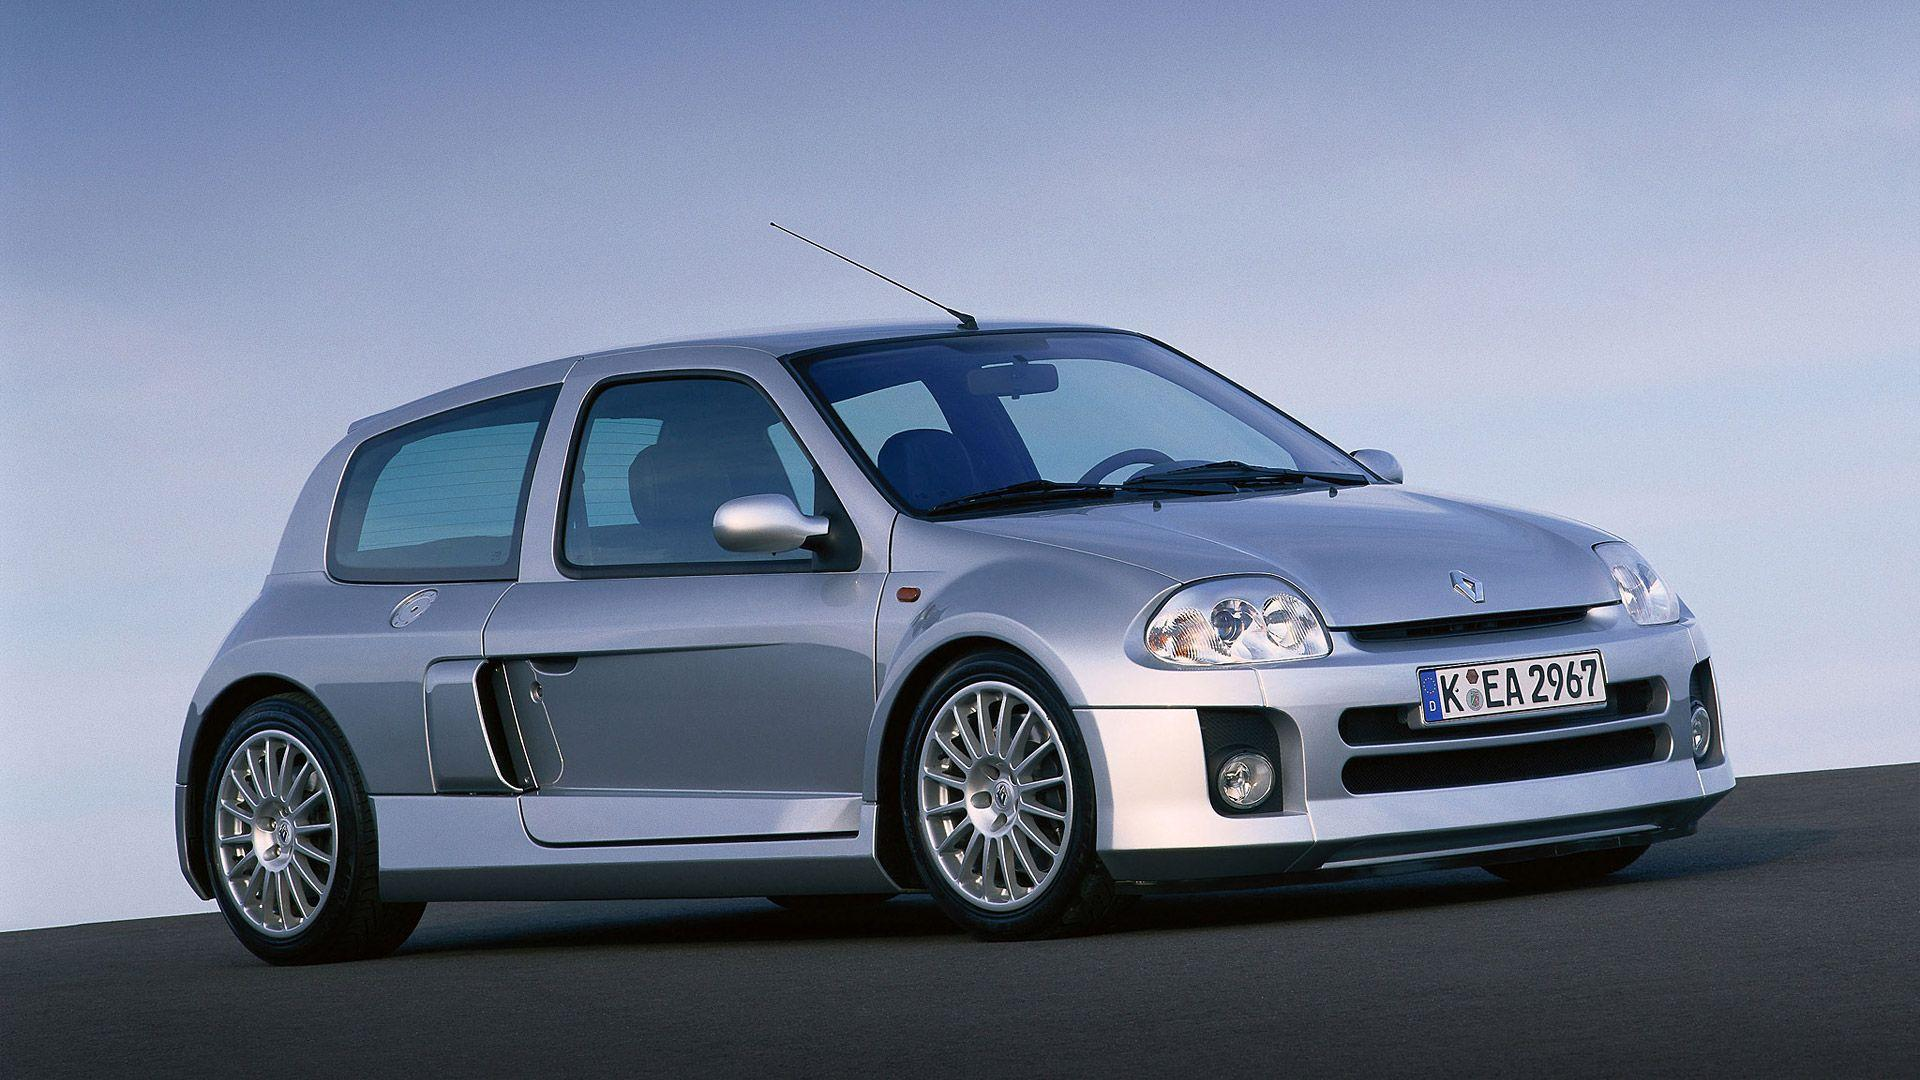 2000 Renault Clio V6 Wallpapers & HD Image